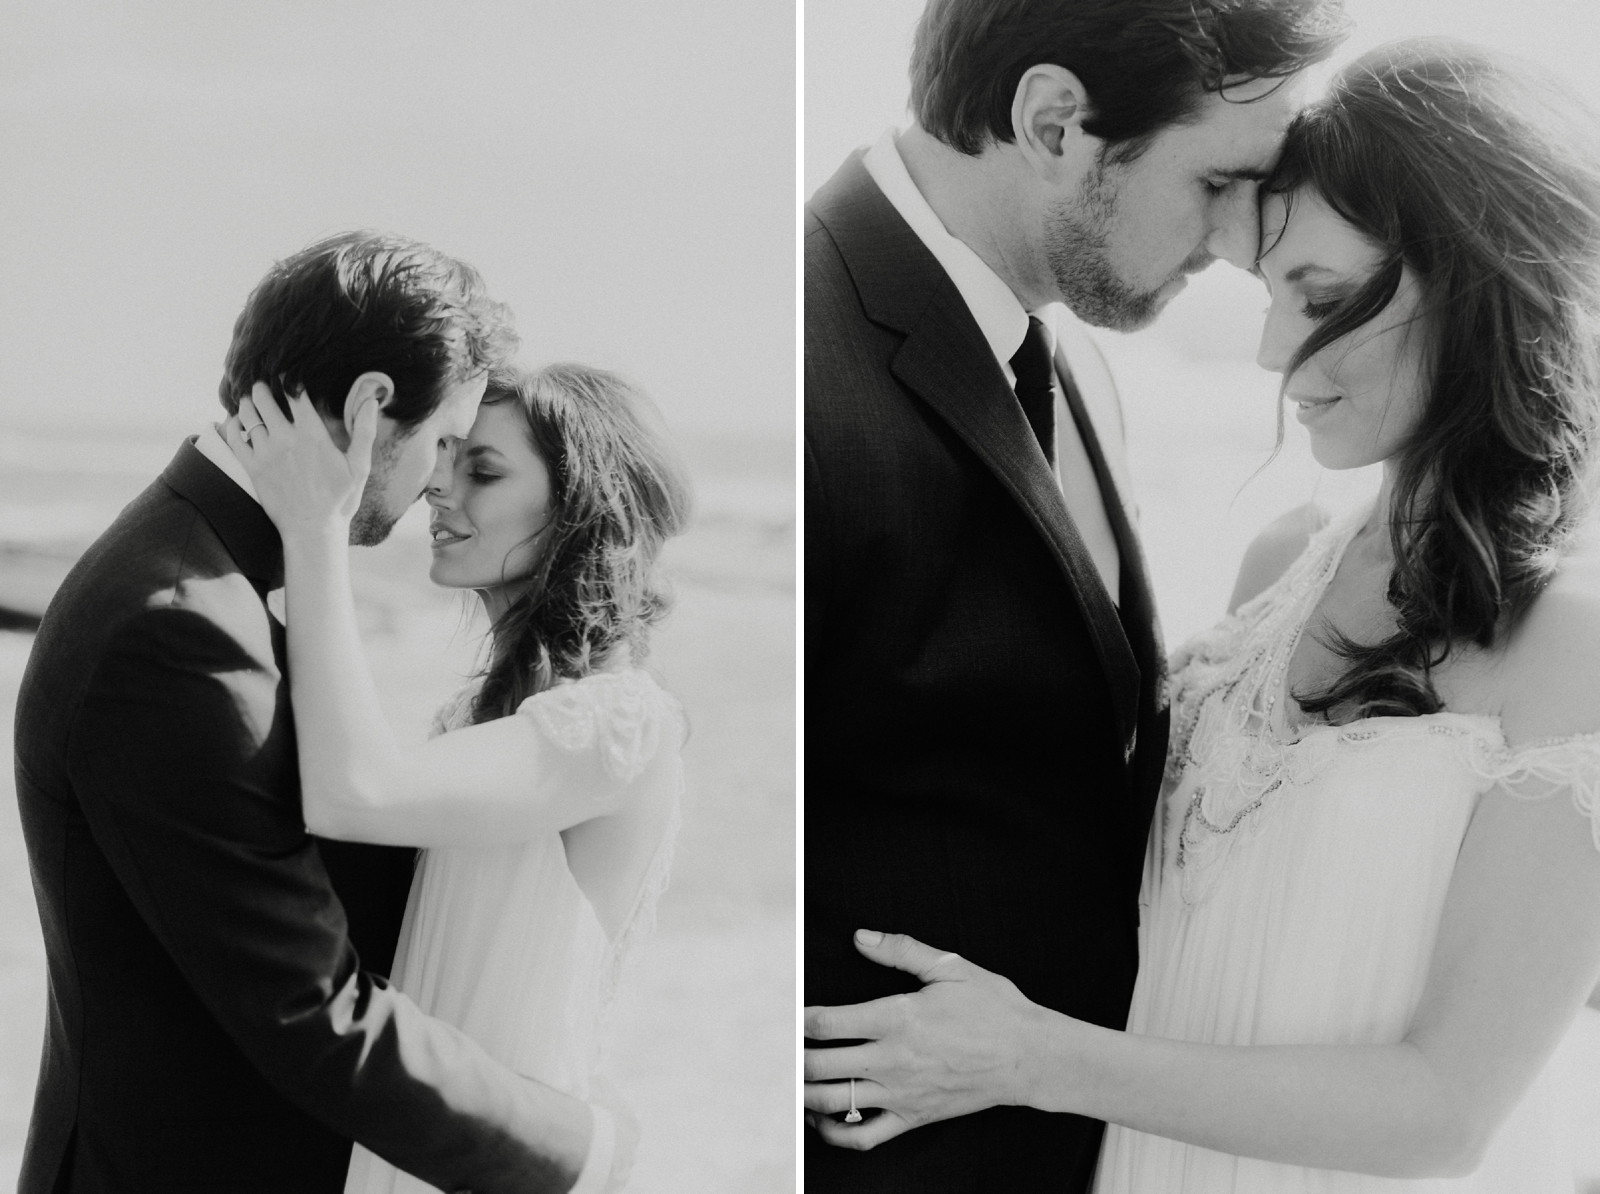 Kevin+Angie-Married-Blog-00022.jpg